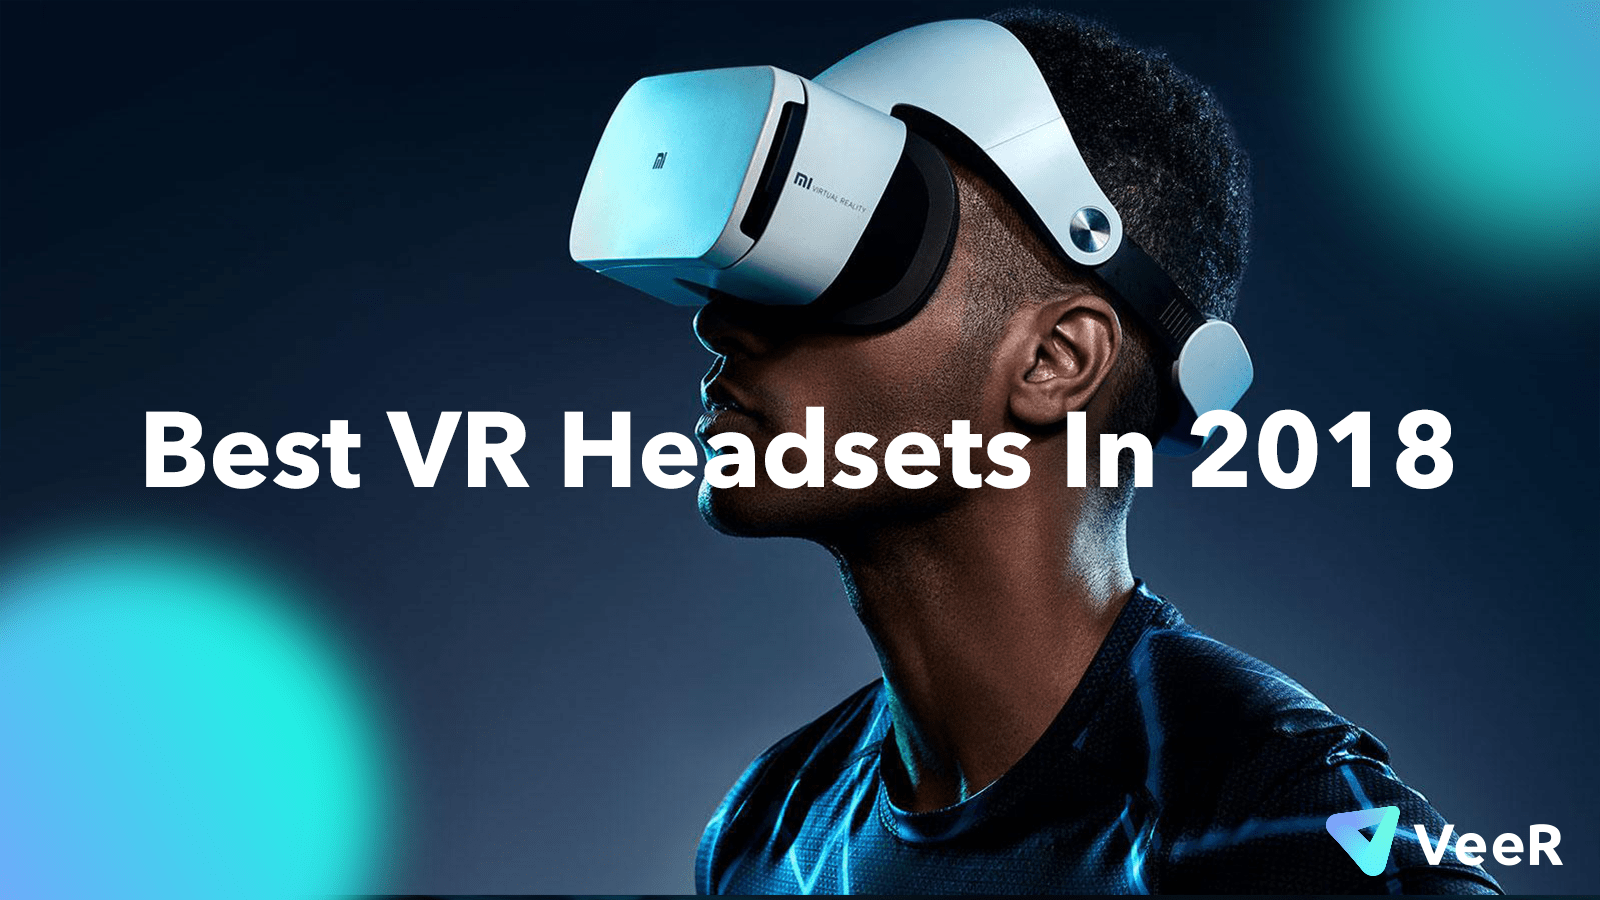 Best VR Headsets in 2018